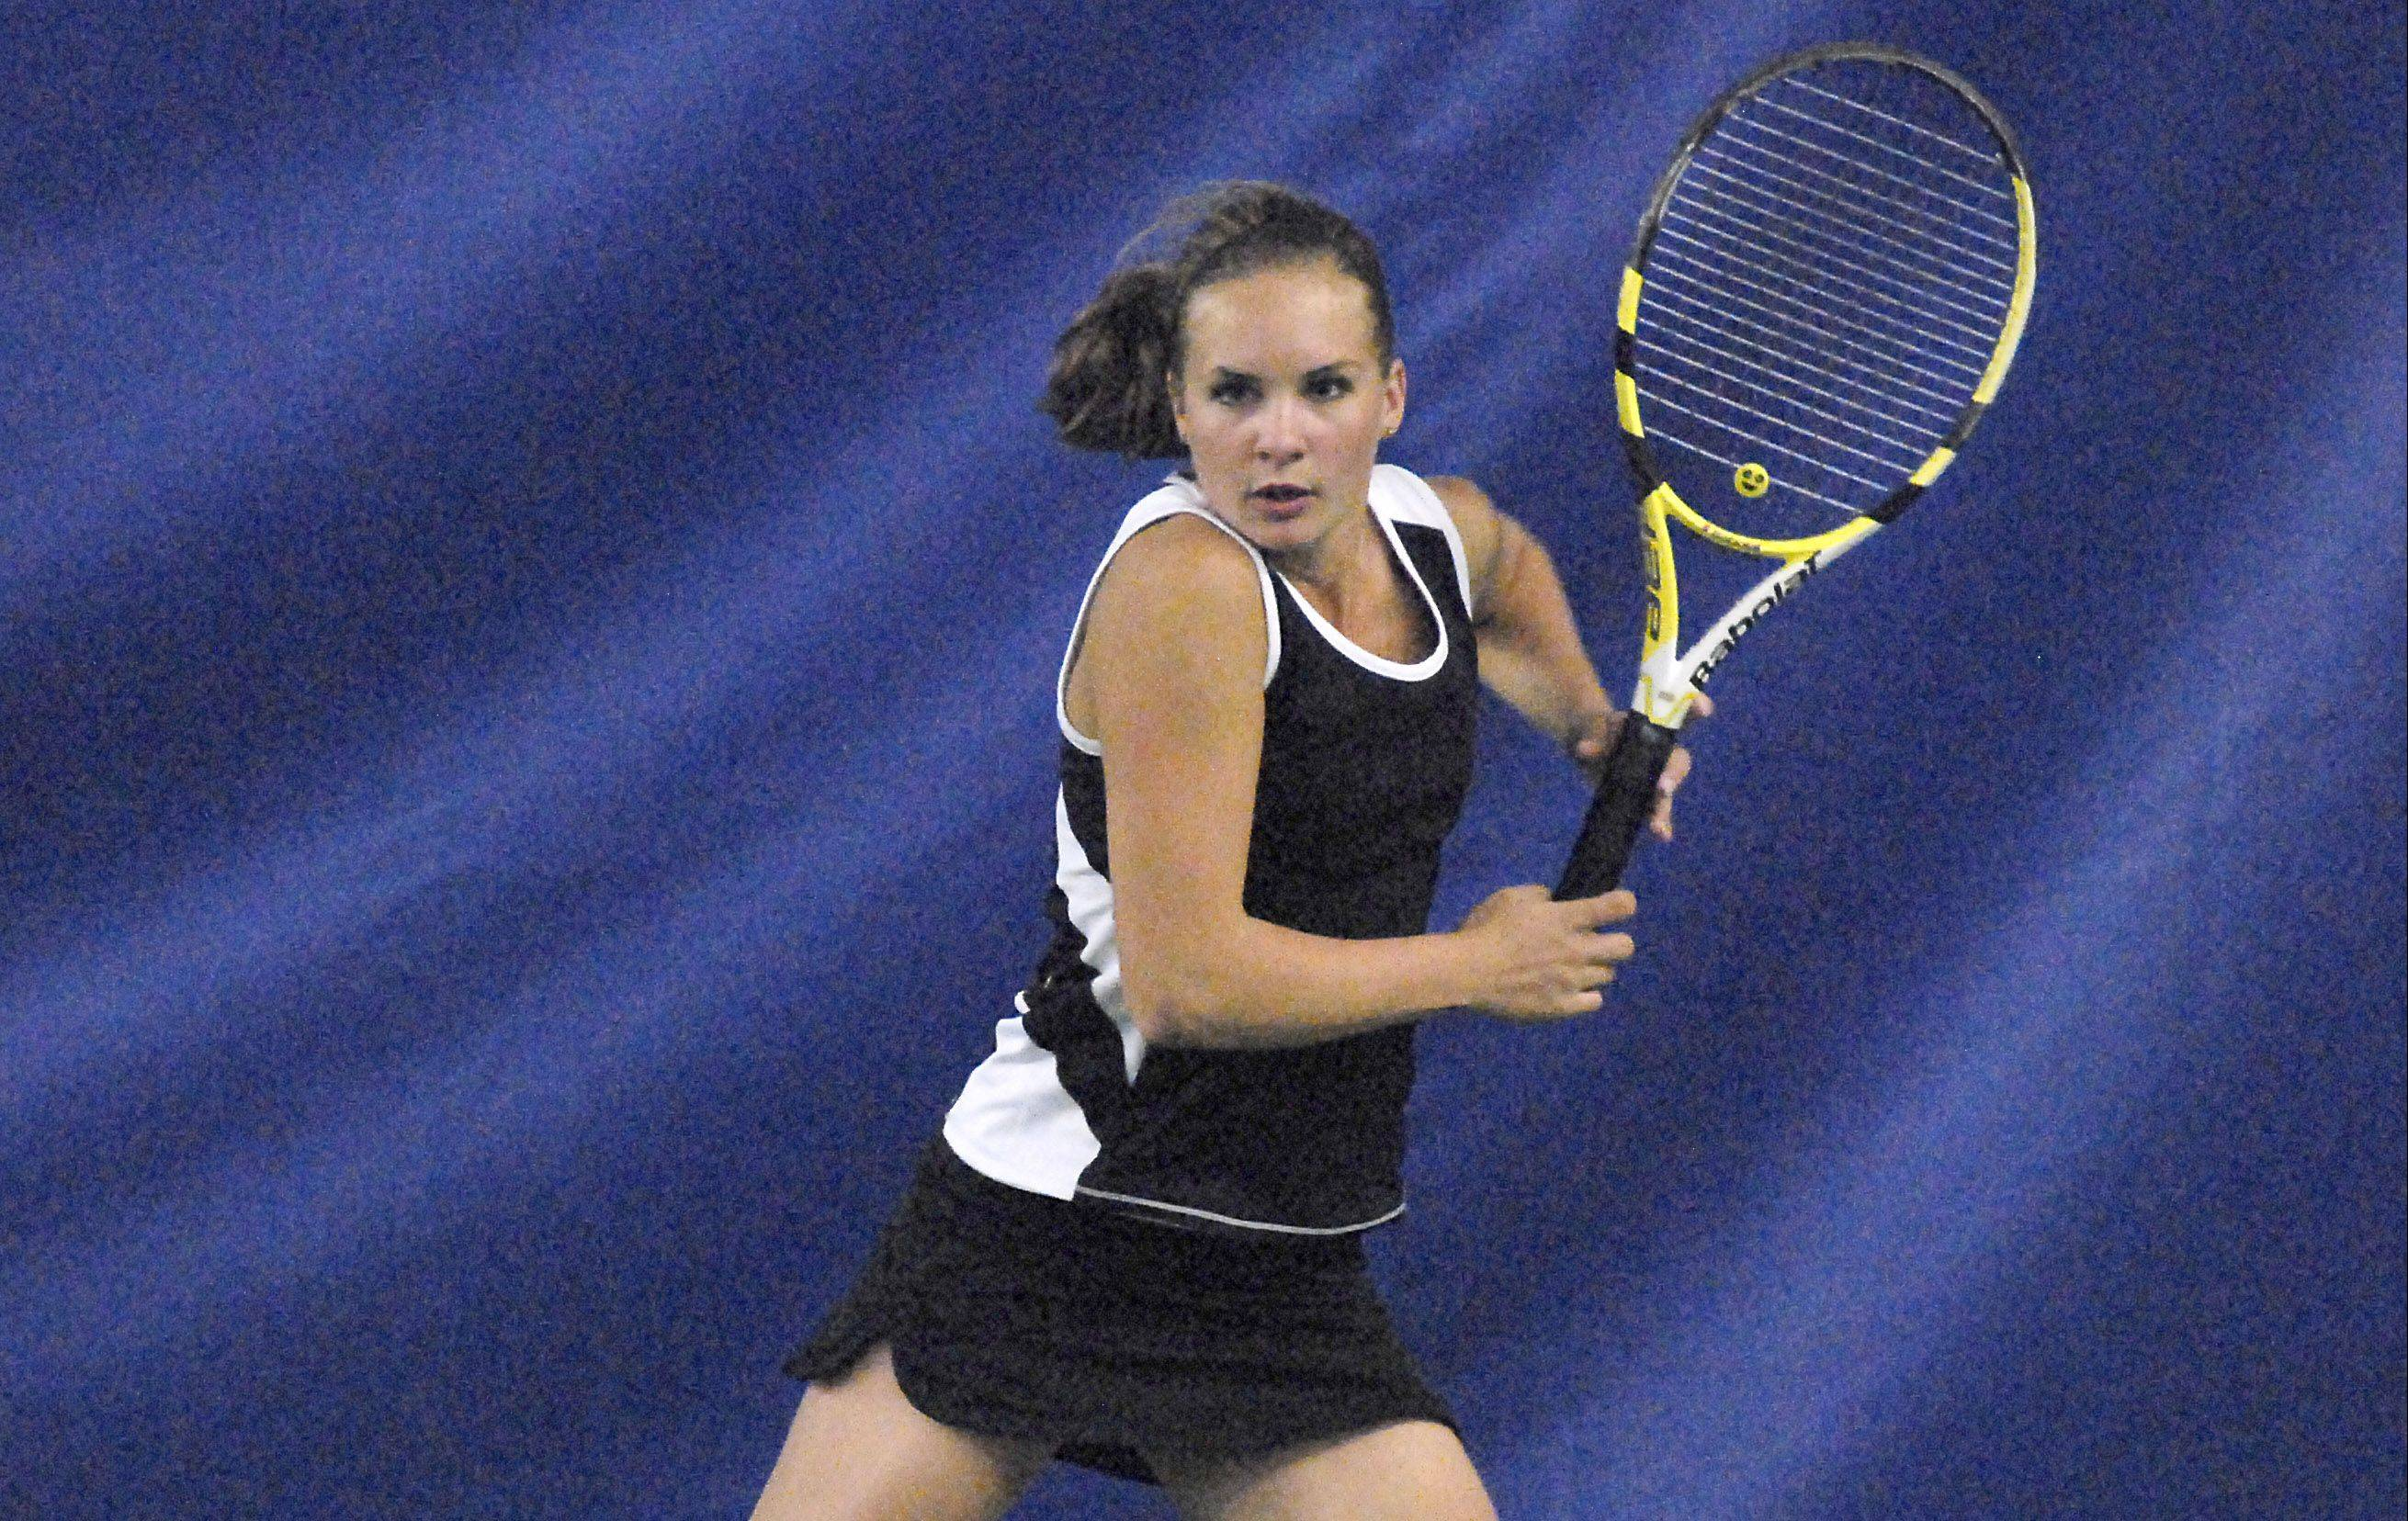 St. Charles East's Sammie Schrepferman in a singles semi-finals match in the sectional at St. Charles East on Saturday, October 13.